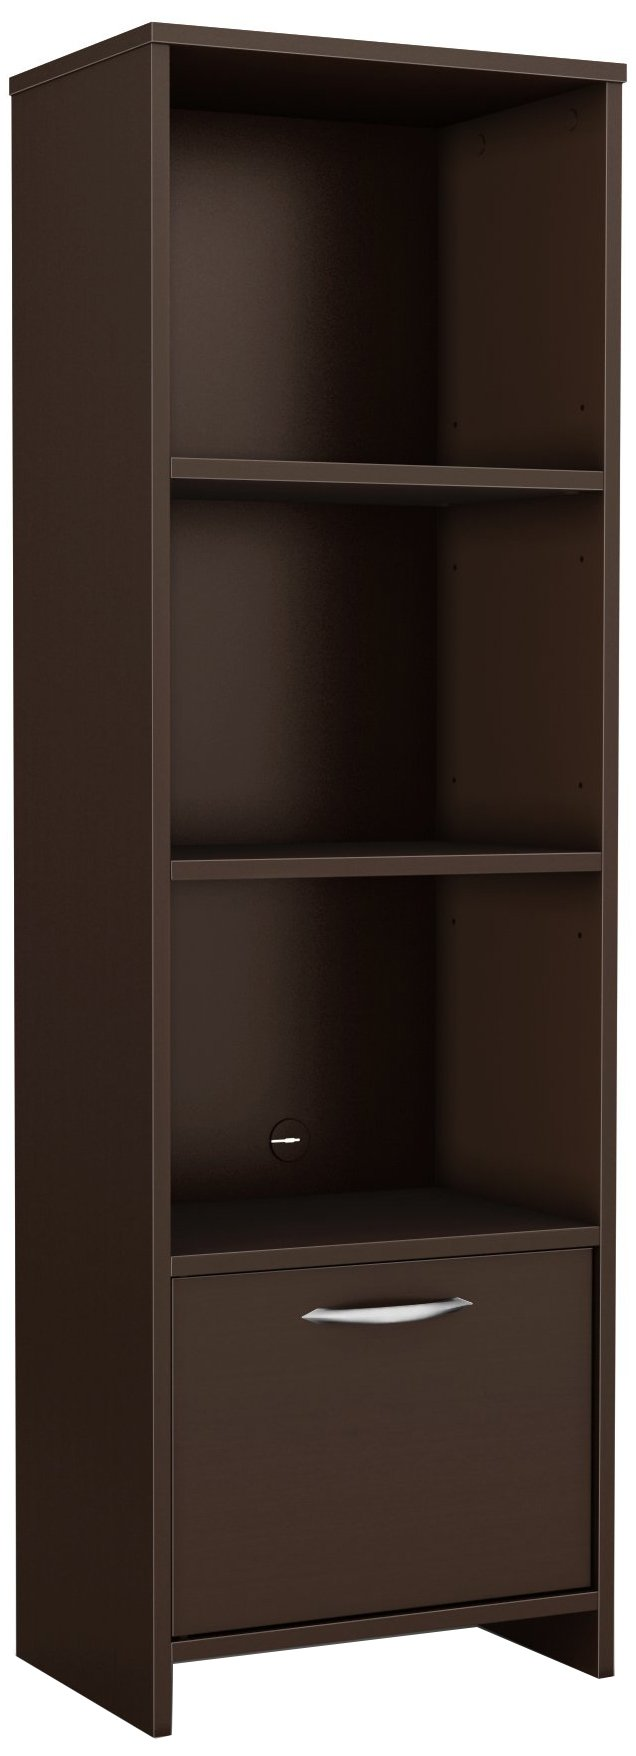 South Shore Narrow 3-Shelf Storage Bookcase with Door, Chocolate